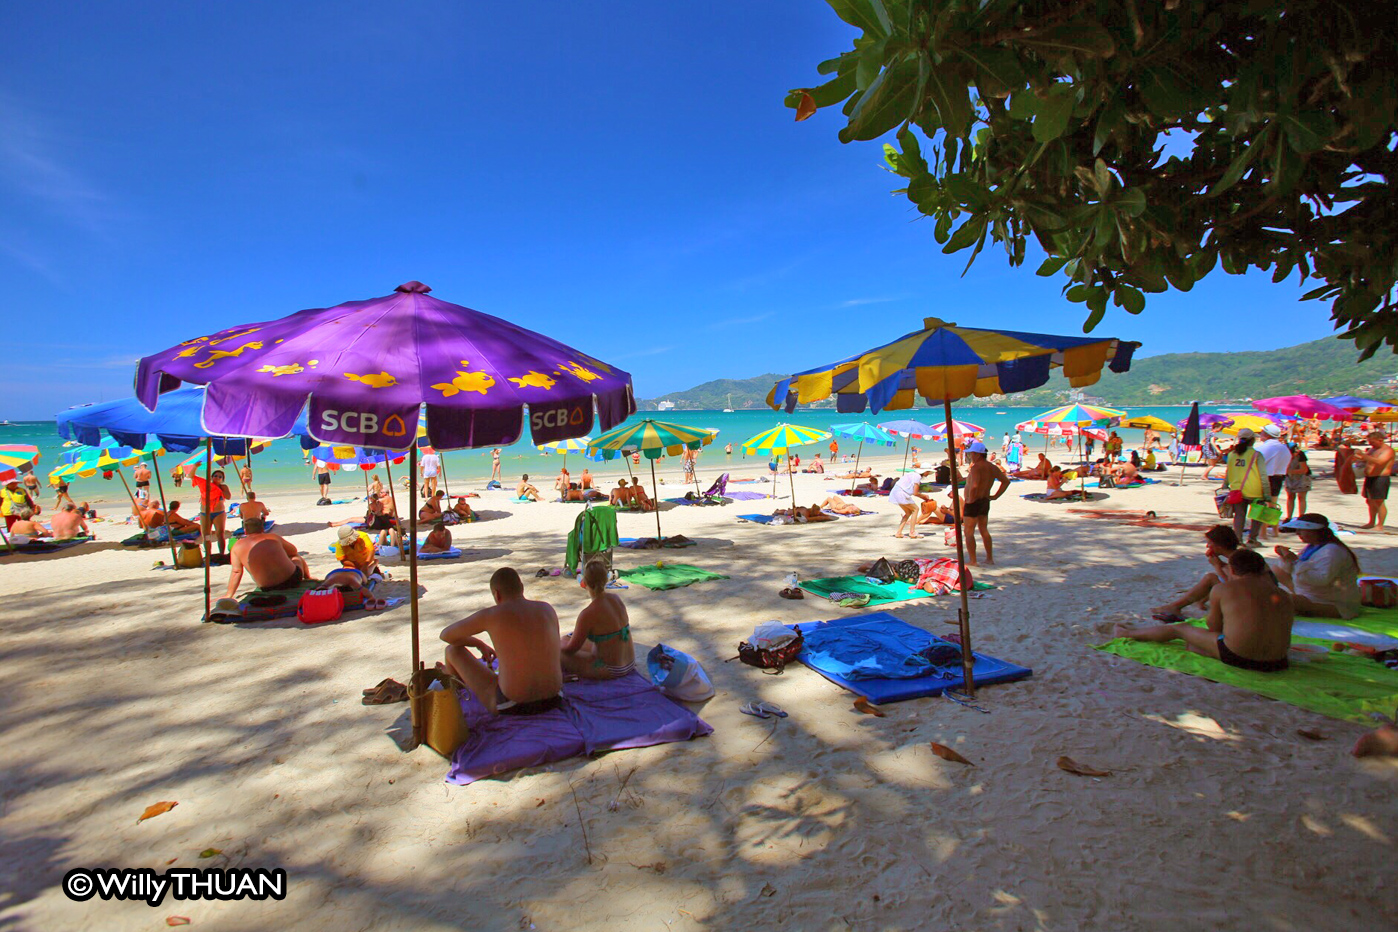 Patong Beach – What to Do in Patong